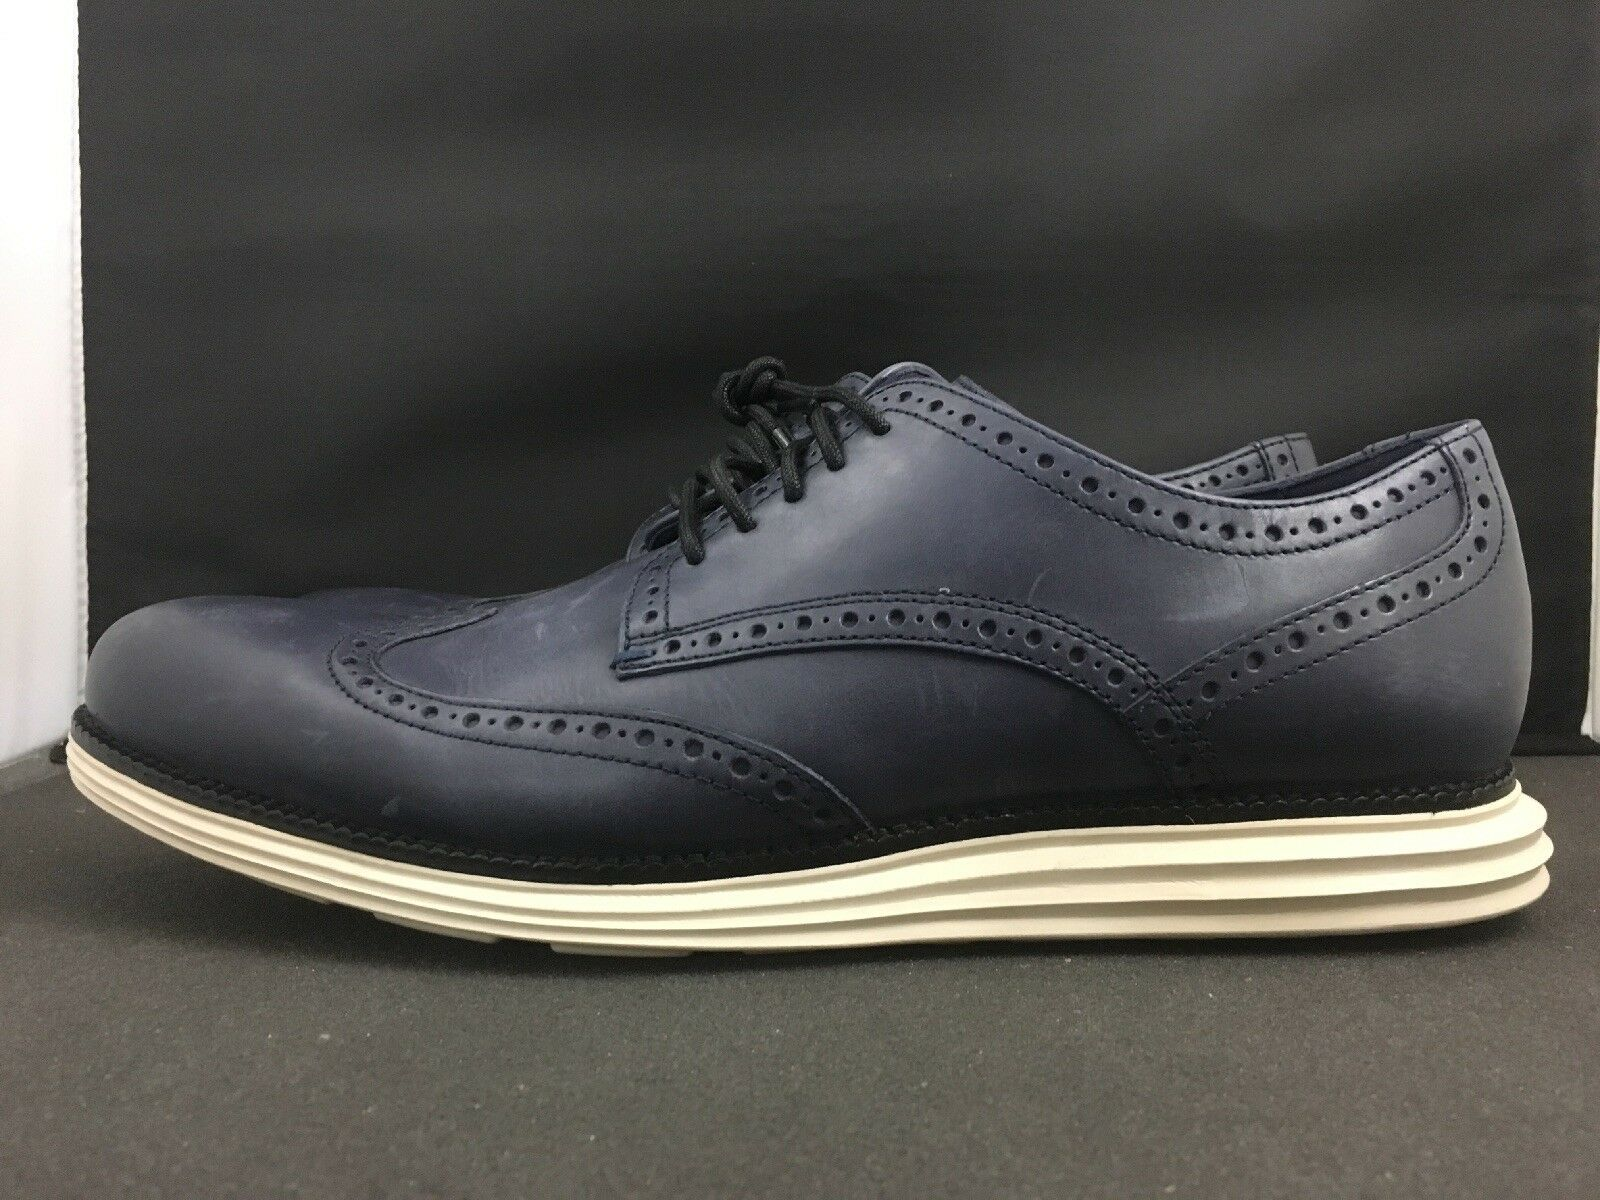 Cole Haan Men's  Navy blu Leather Original Grand Winspit Oxford scarpe Sz 11  qualità ufficiale